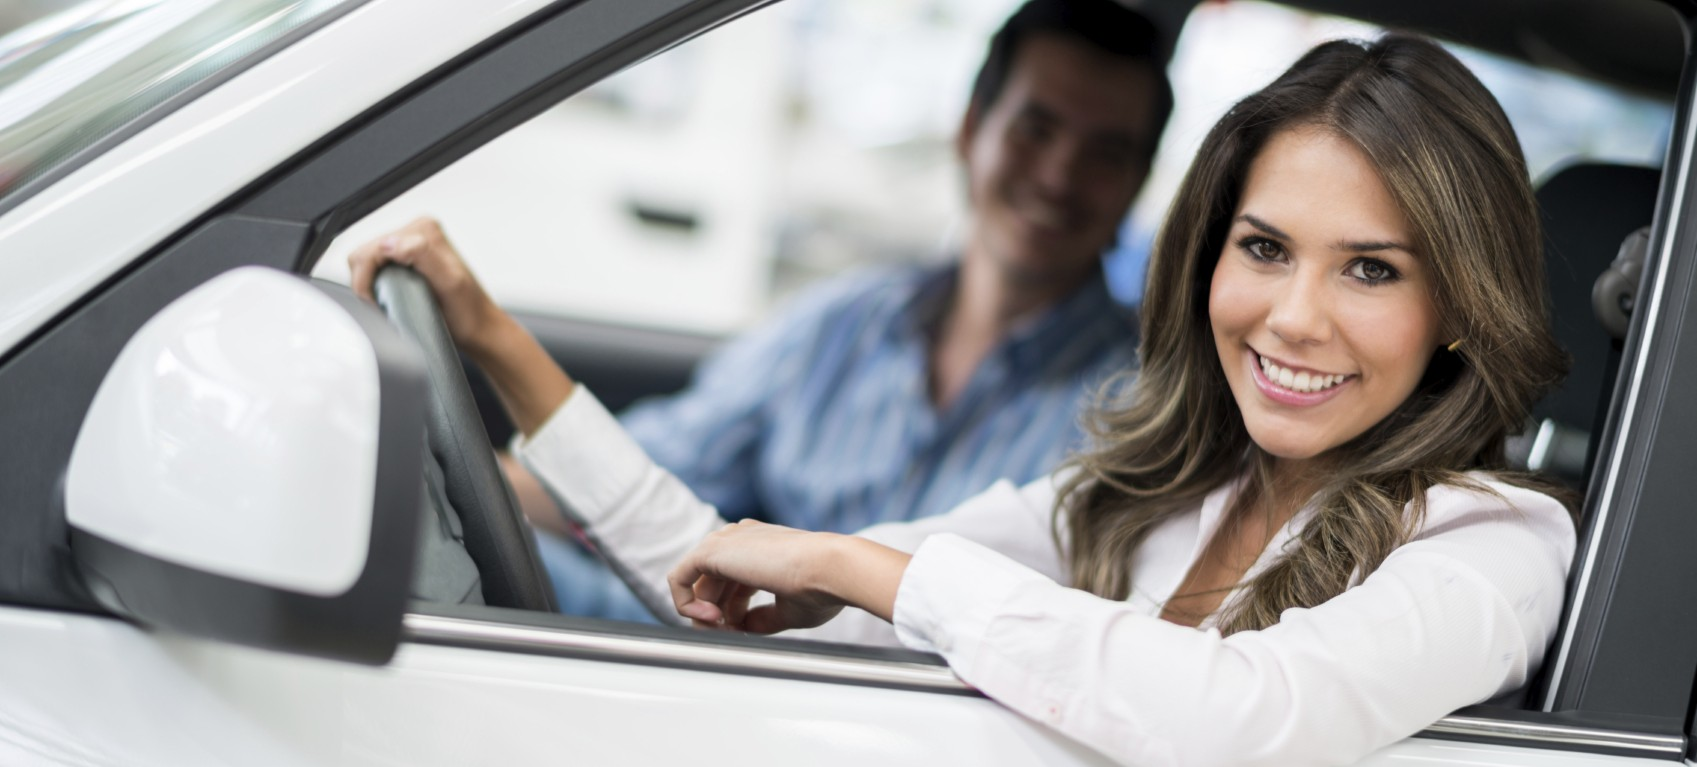 Photo of couple commuting to work in car